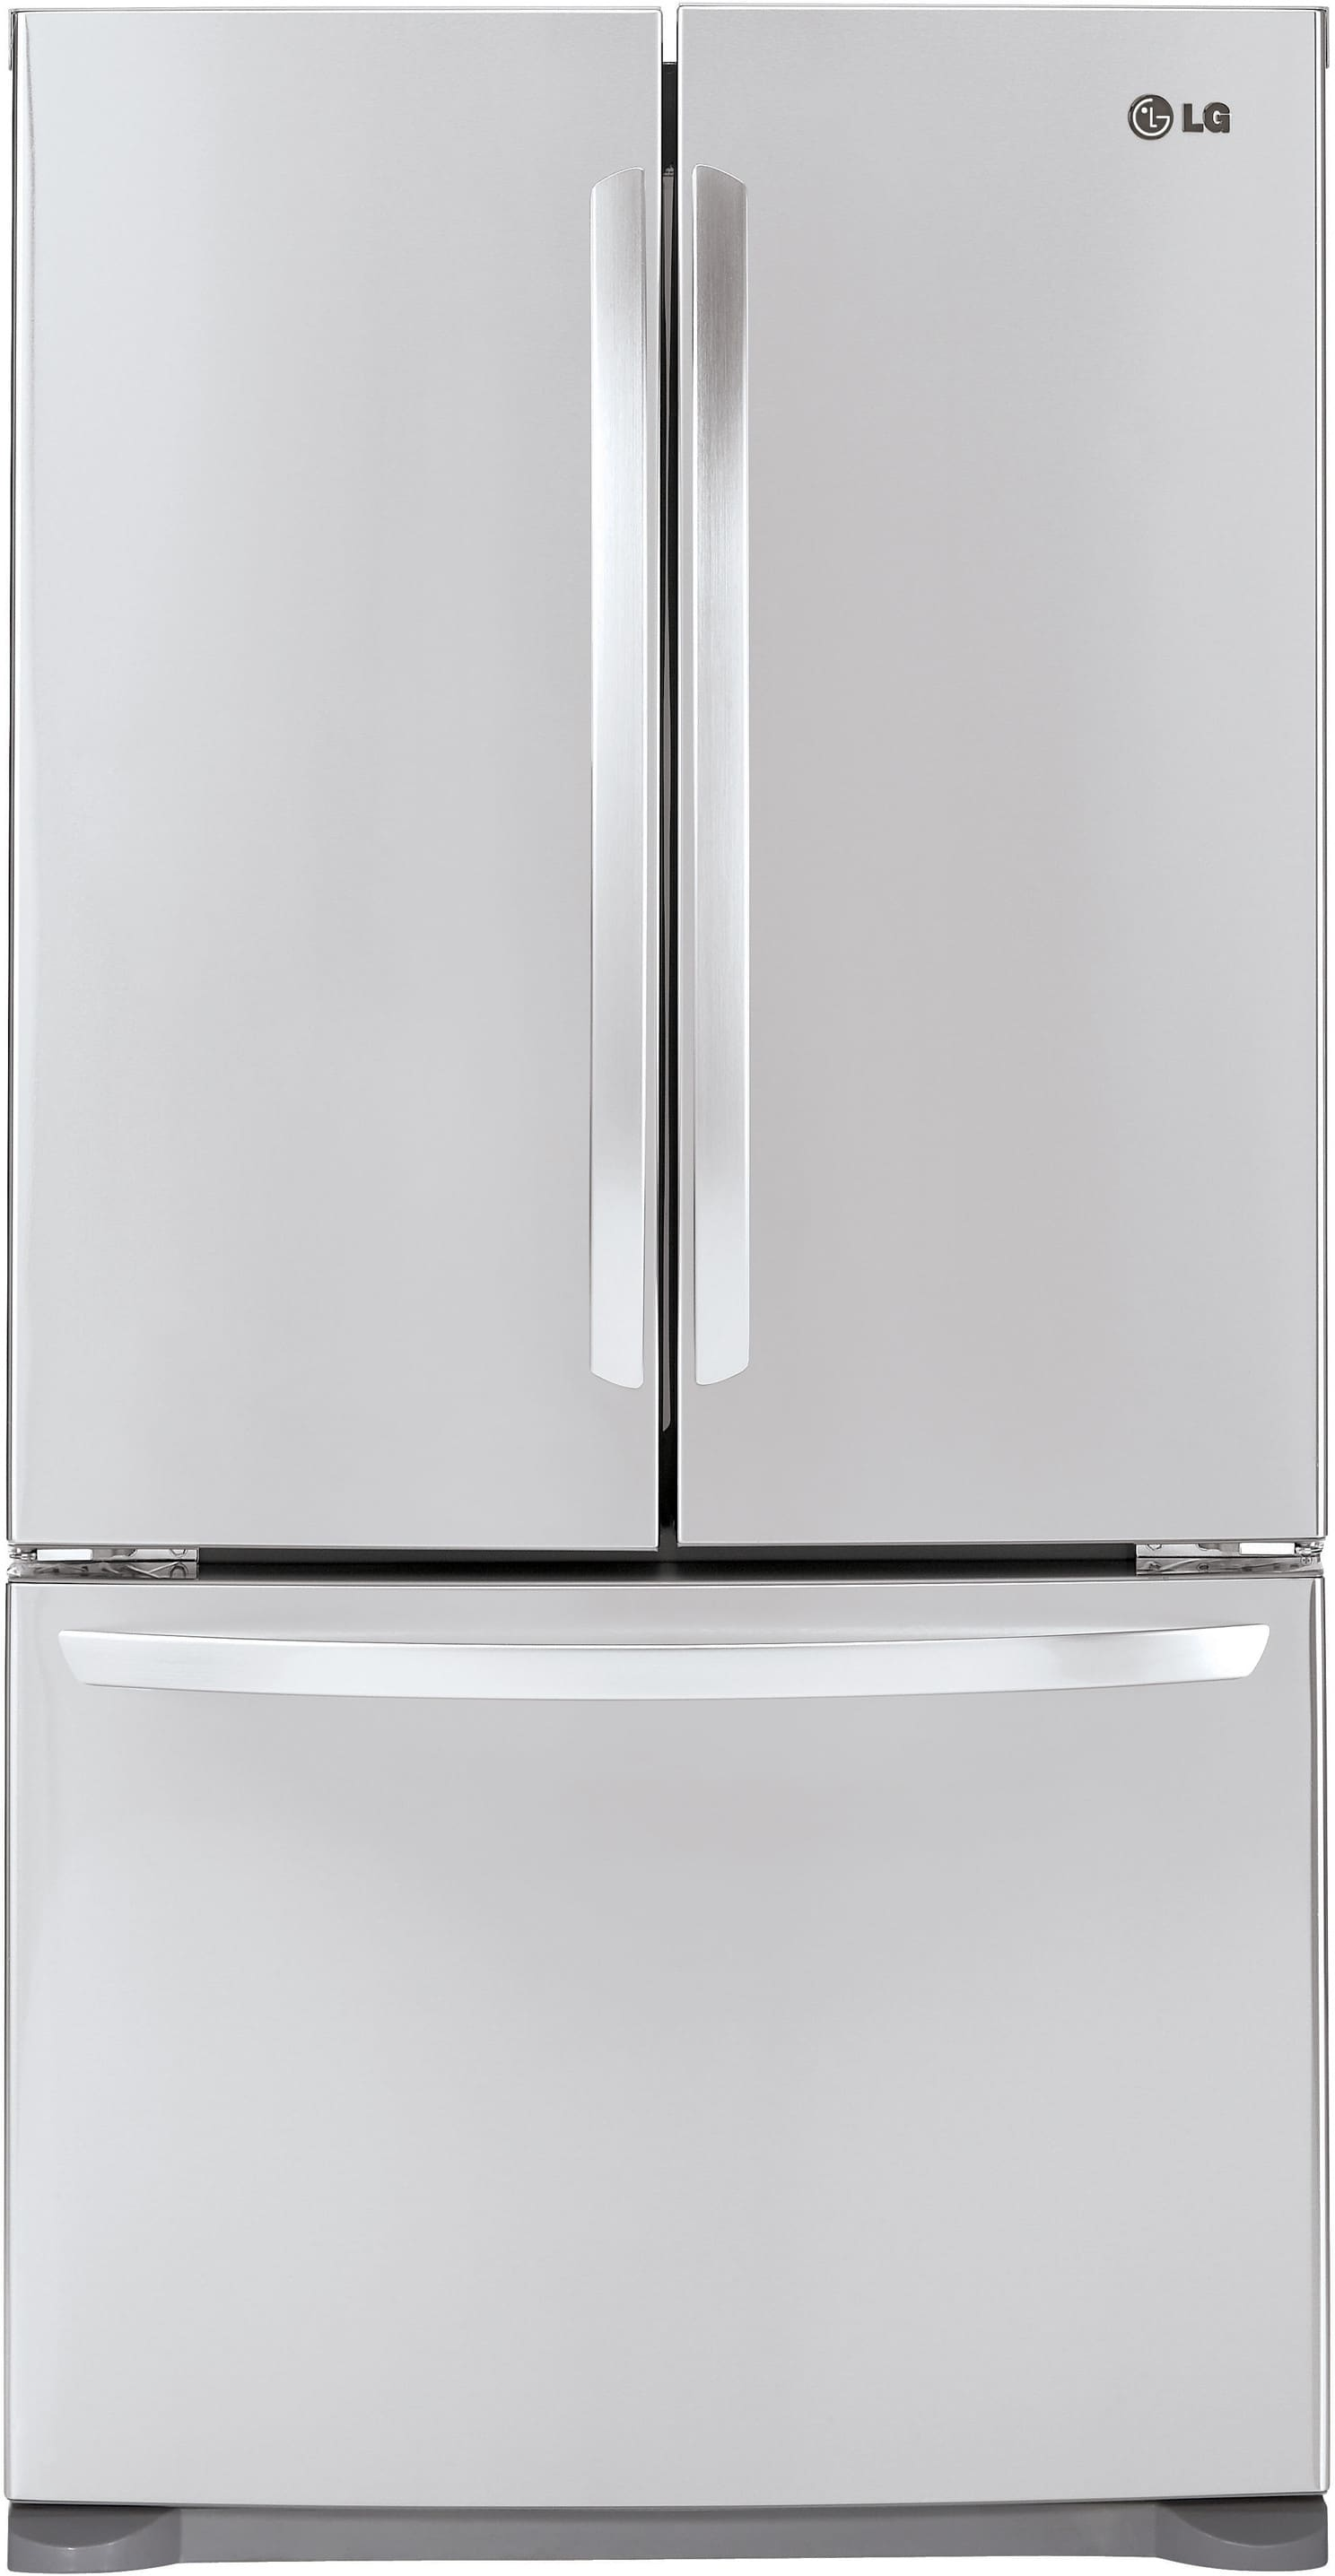 LG LFC21776ST 36 Inch Counter Depth French Door Refrigerator With IcePlus™  Freezing, SmartDiagnosis™, SpillProtector™, Multi Air Flow, Linear  Compressor, ...